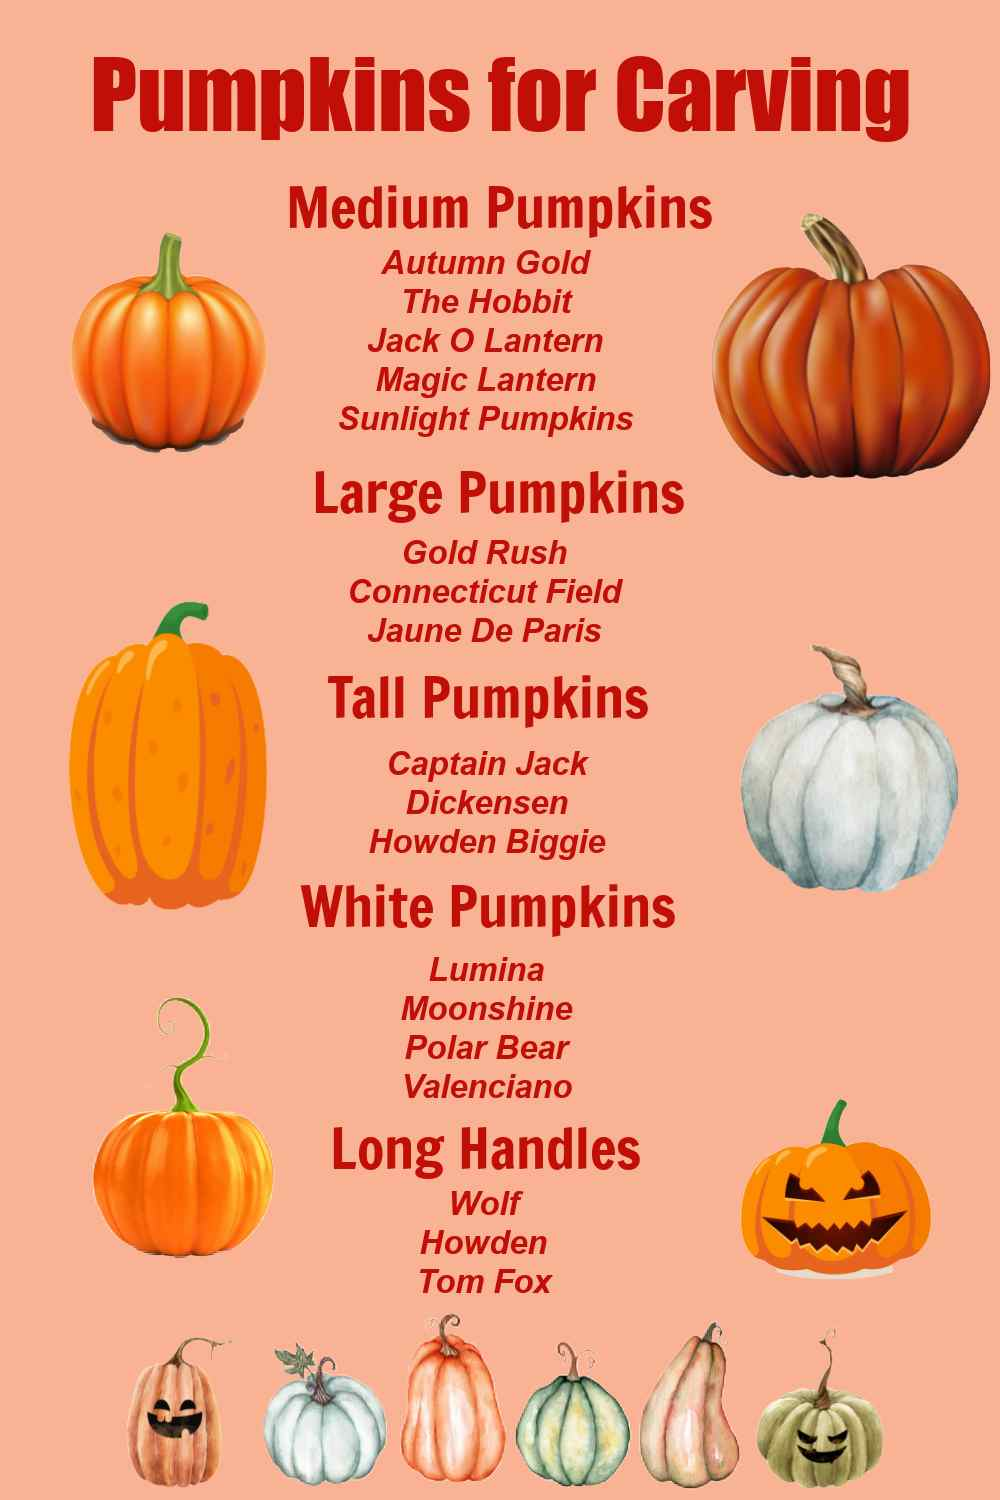 List of pumpkins for carving with images.